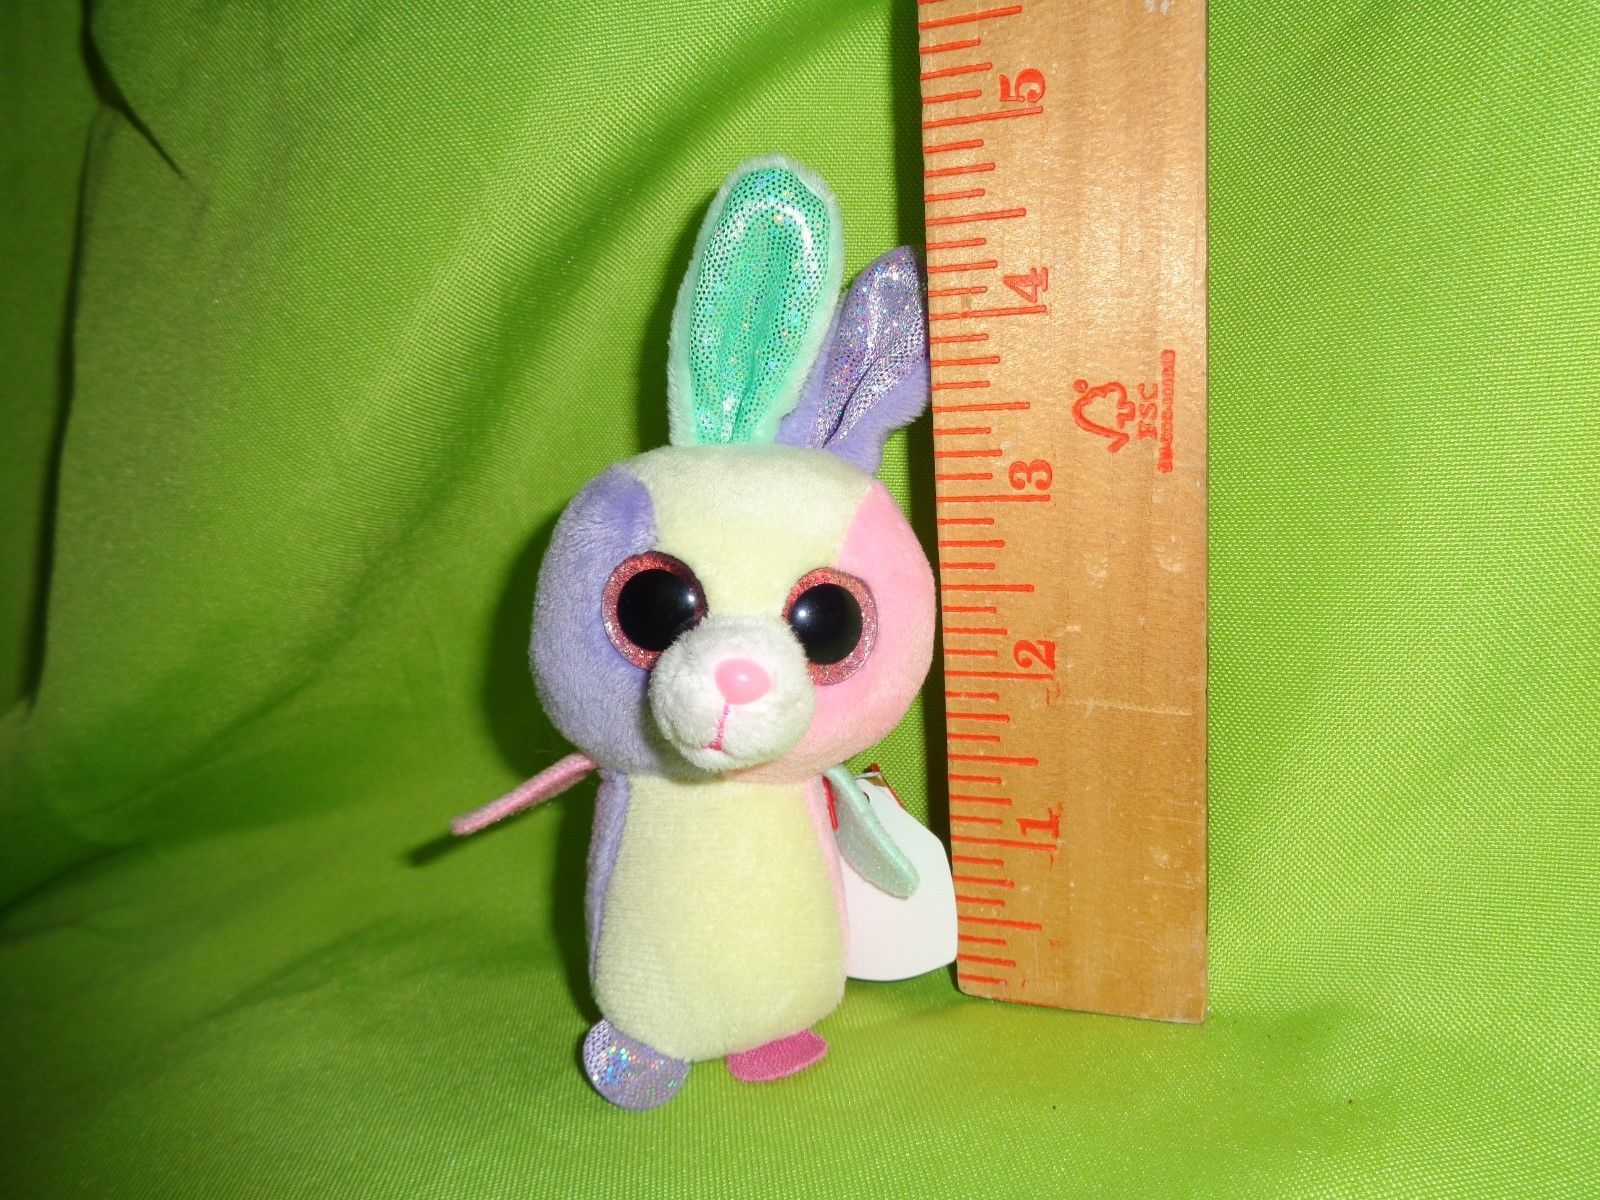 S l1600. S l1600. Previous. Ty Bloom Bunny Easter Glitter Eyes Basket Beanie  Boo Plush Animal Toy ... f2fd57bda9bf